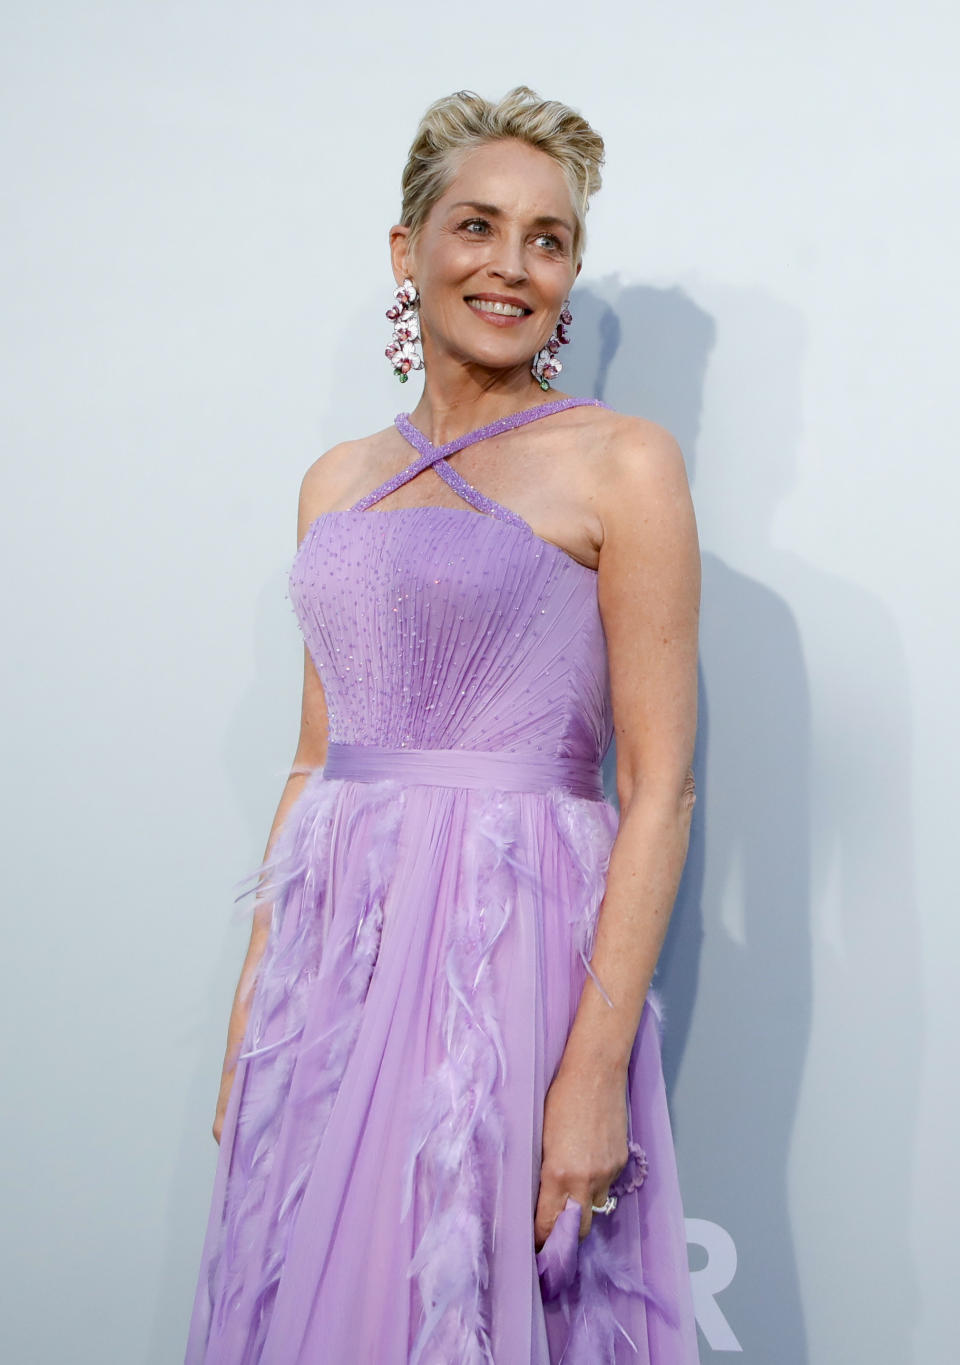 The 74th Cannes Film Festival - The amfAR's Cinema Against AIDS 2021 event - Antibes, France, July 16, 2021. Actor Sharon Stone poses. REUTERS/Sarah Meyssonnier